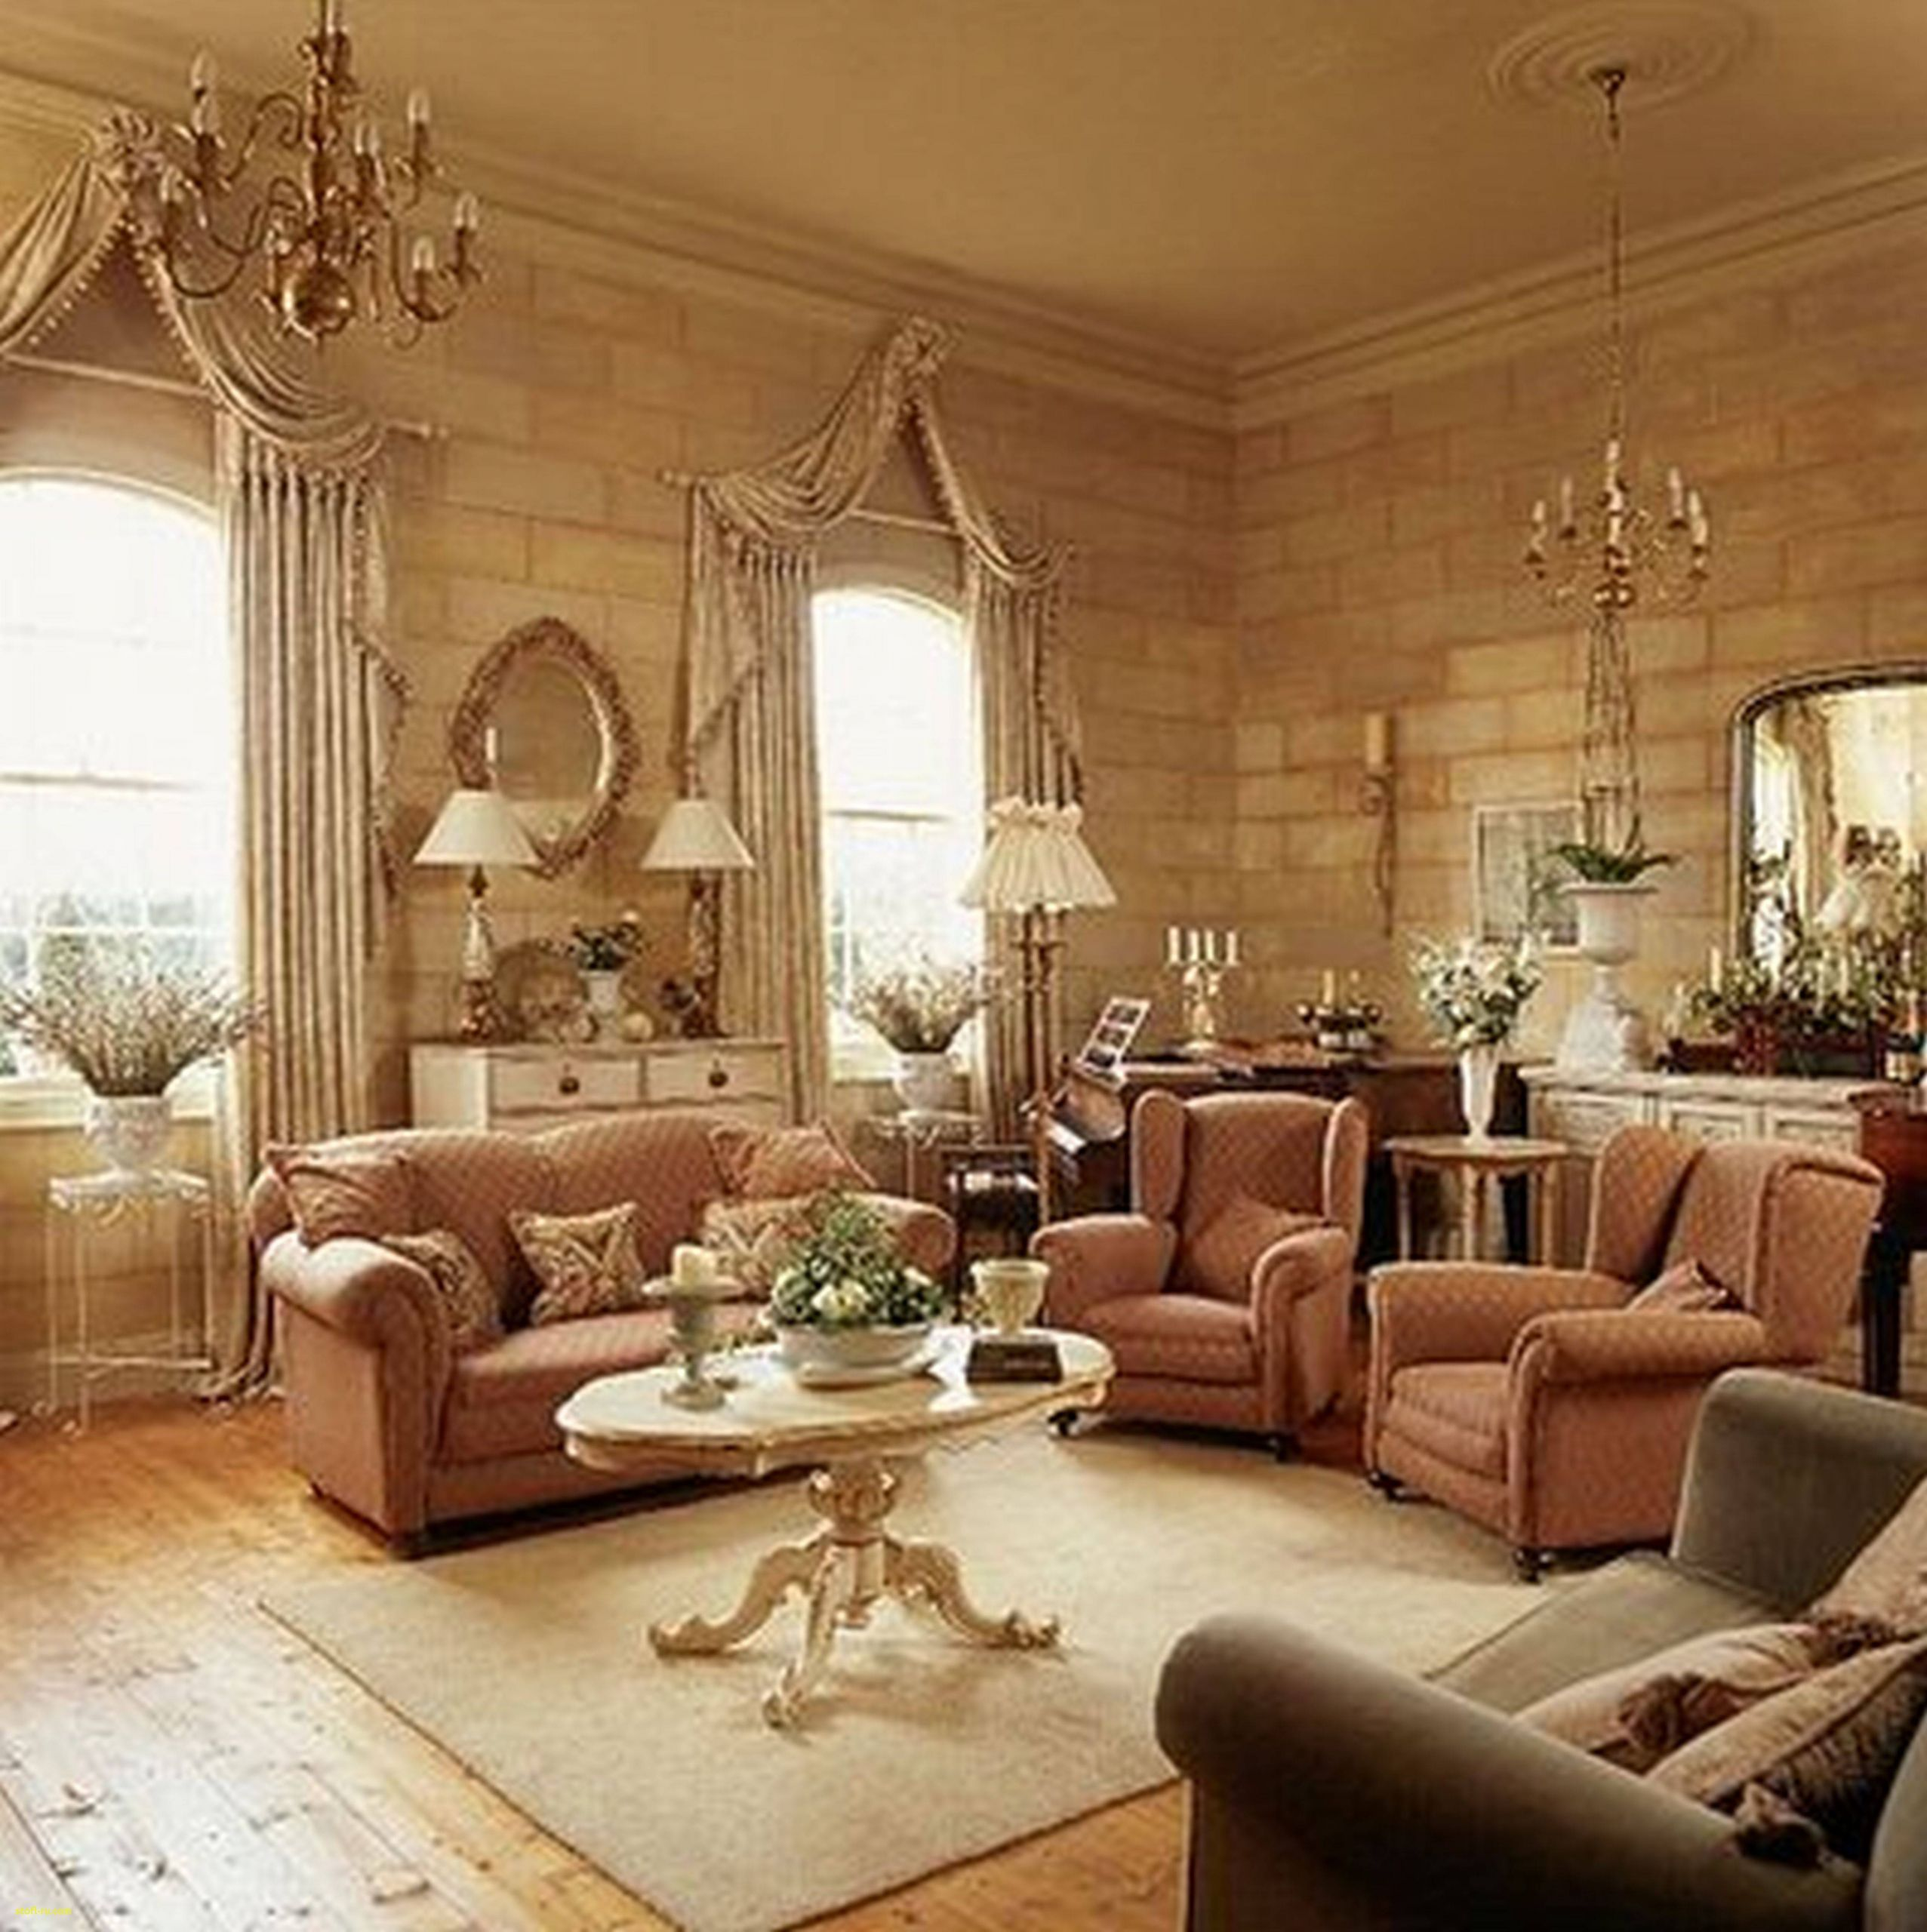 country home interior design pictures country home interior design ideas best living room traditional decorating ideas awesome shaker chairs 0d